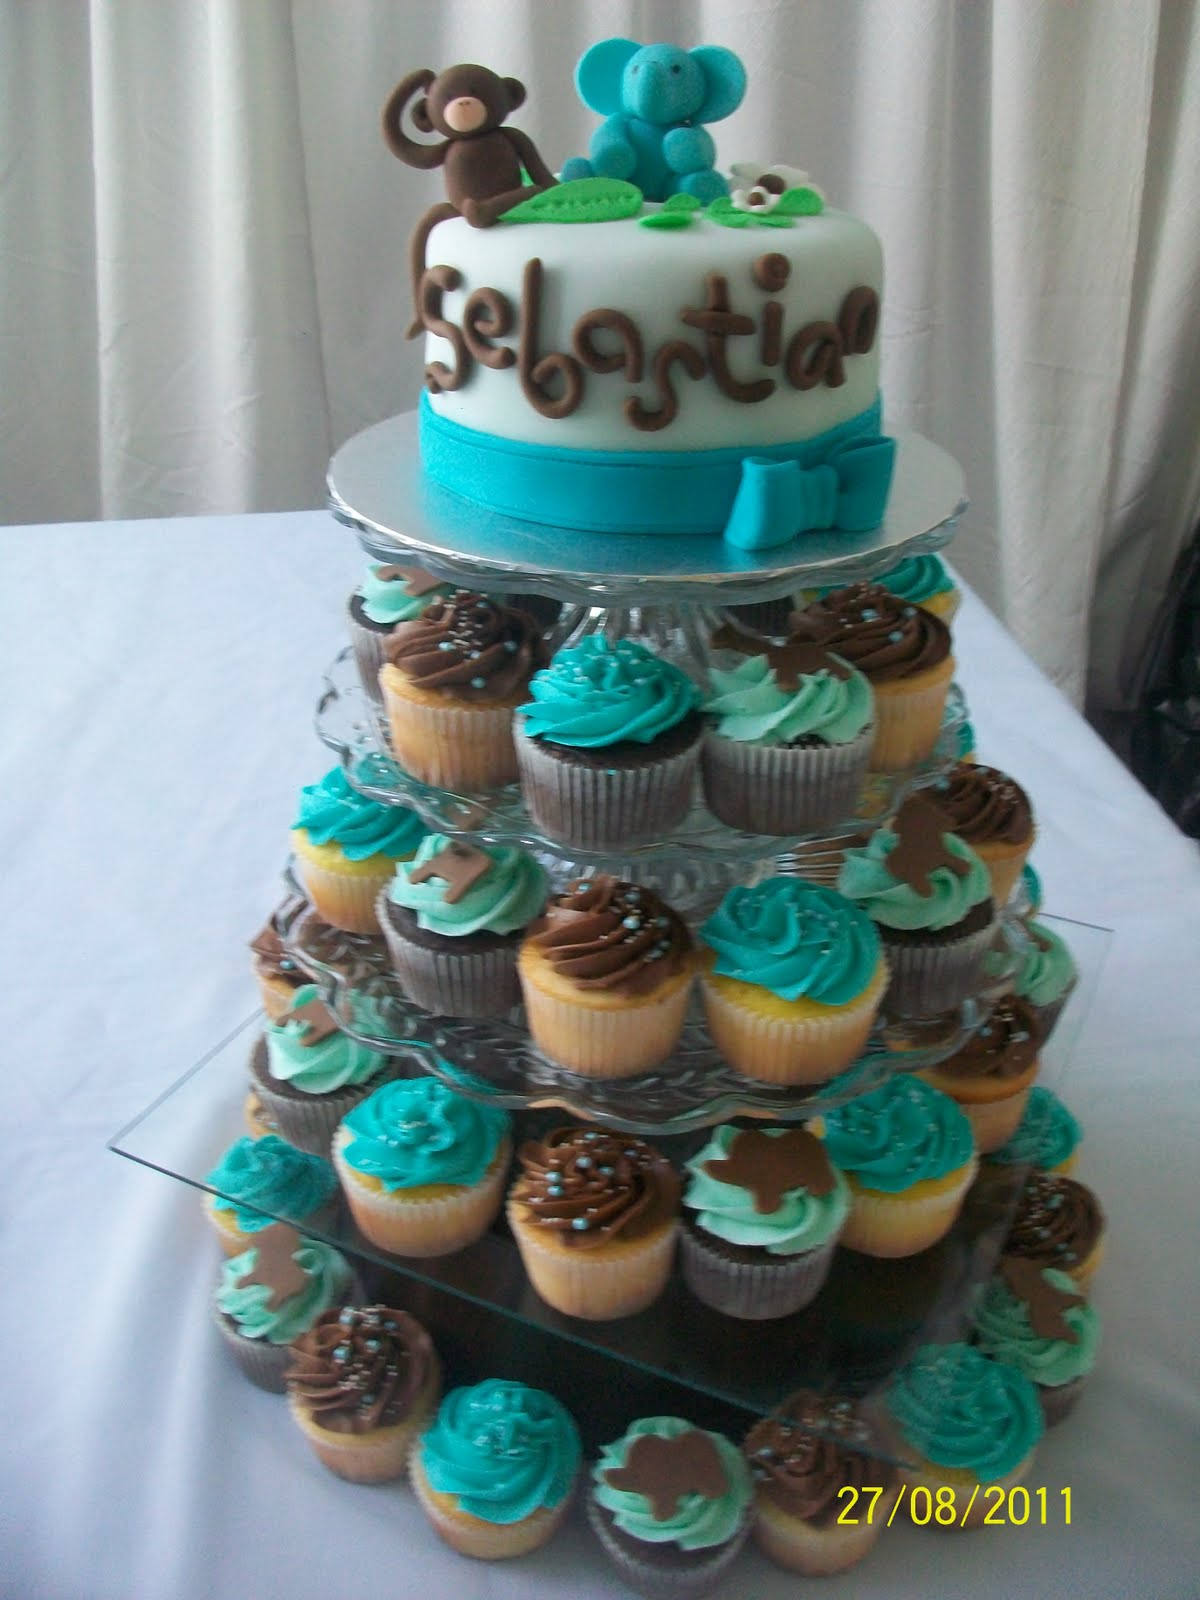 Cherry Pasteleria Creativa Pasteles Baby Shower